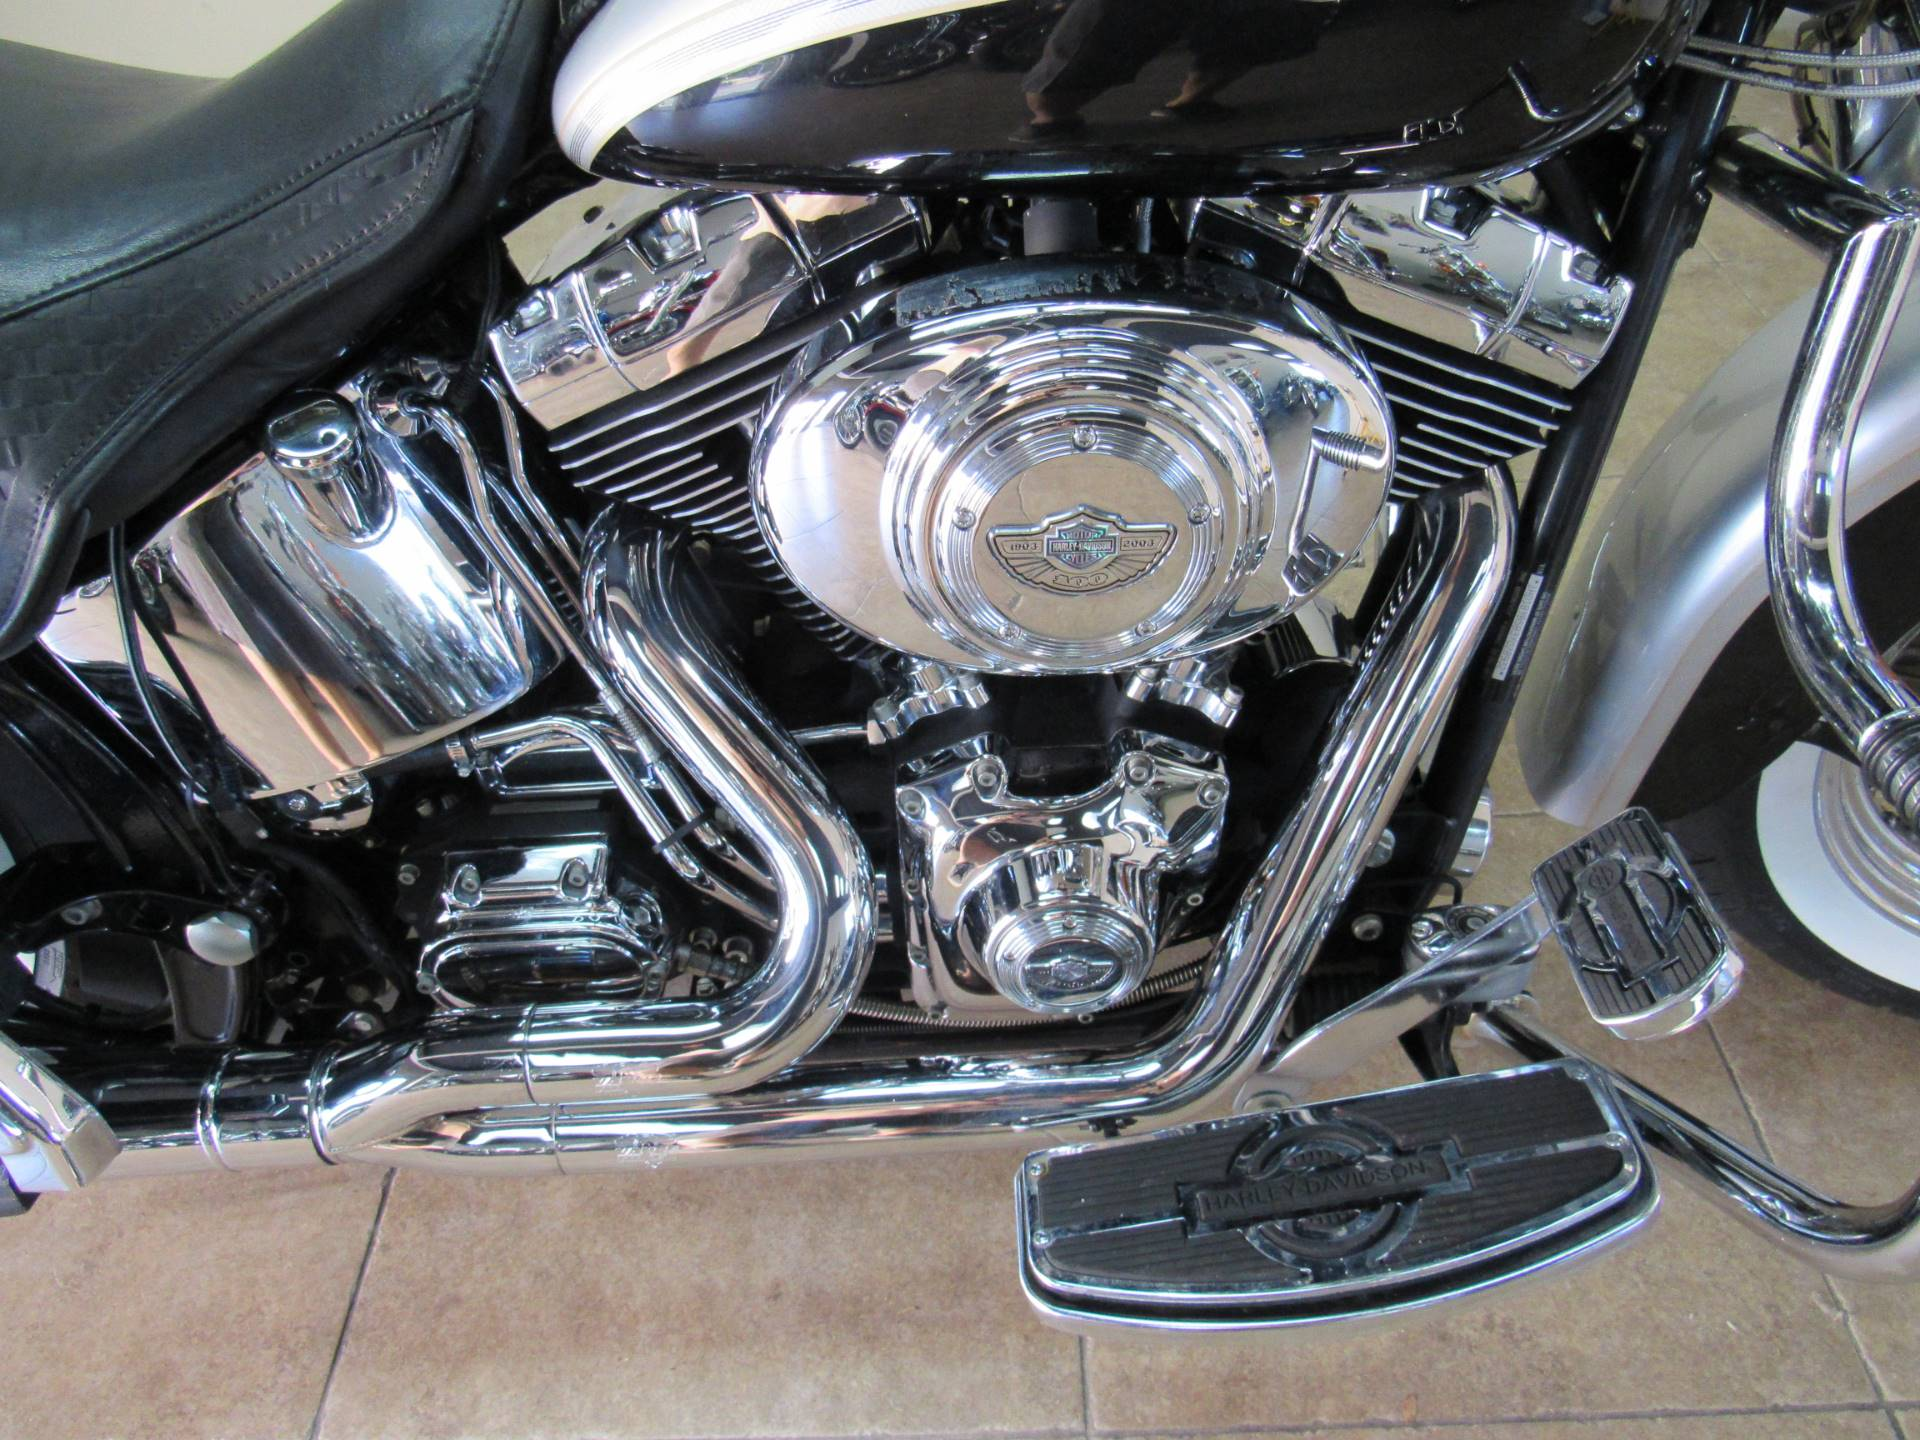 2003 Harley-Davidson FLSTS/FLSTSI Heritage Springer® in Temecula, California - Photo 11